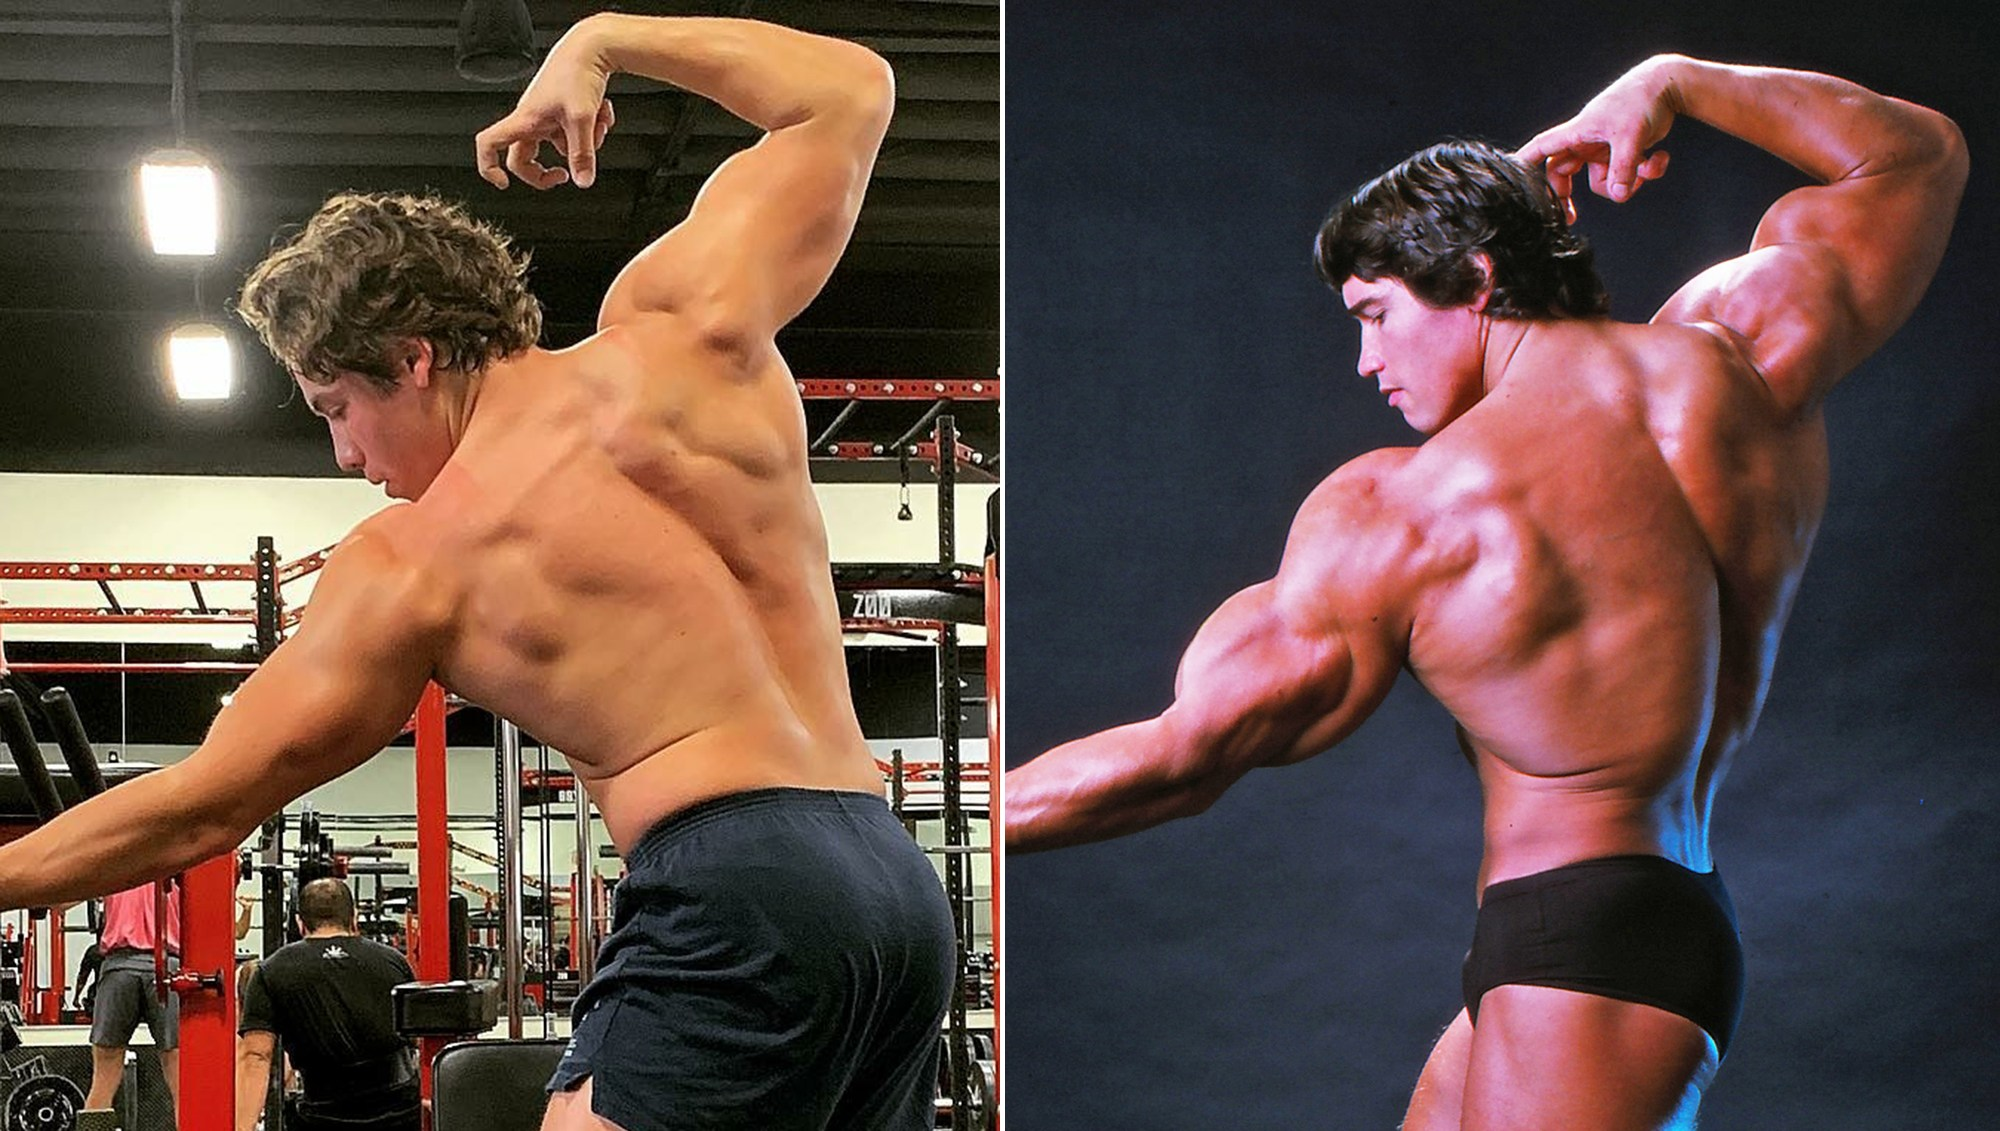 Arnold Schwarzenegger's Son Joseph Baena Recreates Actor's Body Builder Pose